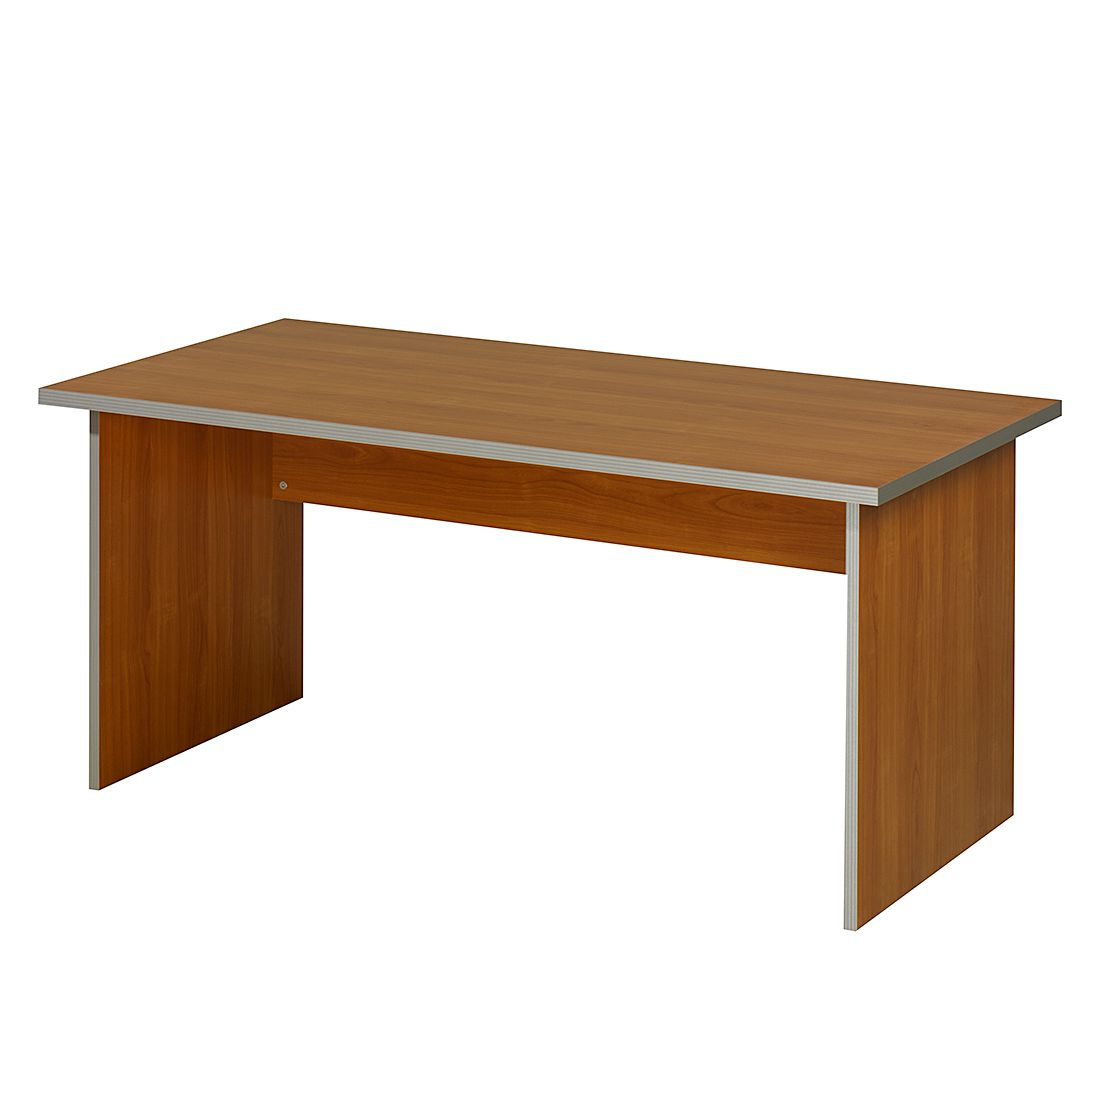 Home 24 - Table de bureau kirk vii - imitation merisier - plateau de table : 80 x 80 cm, wellemöbel